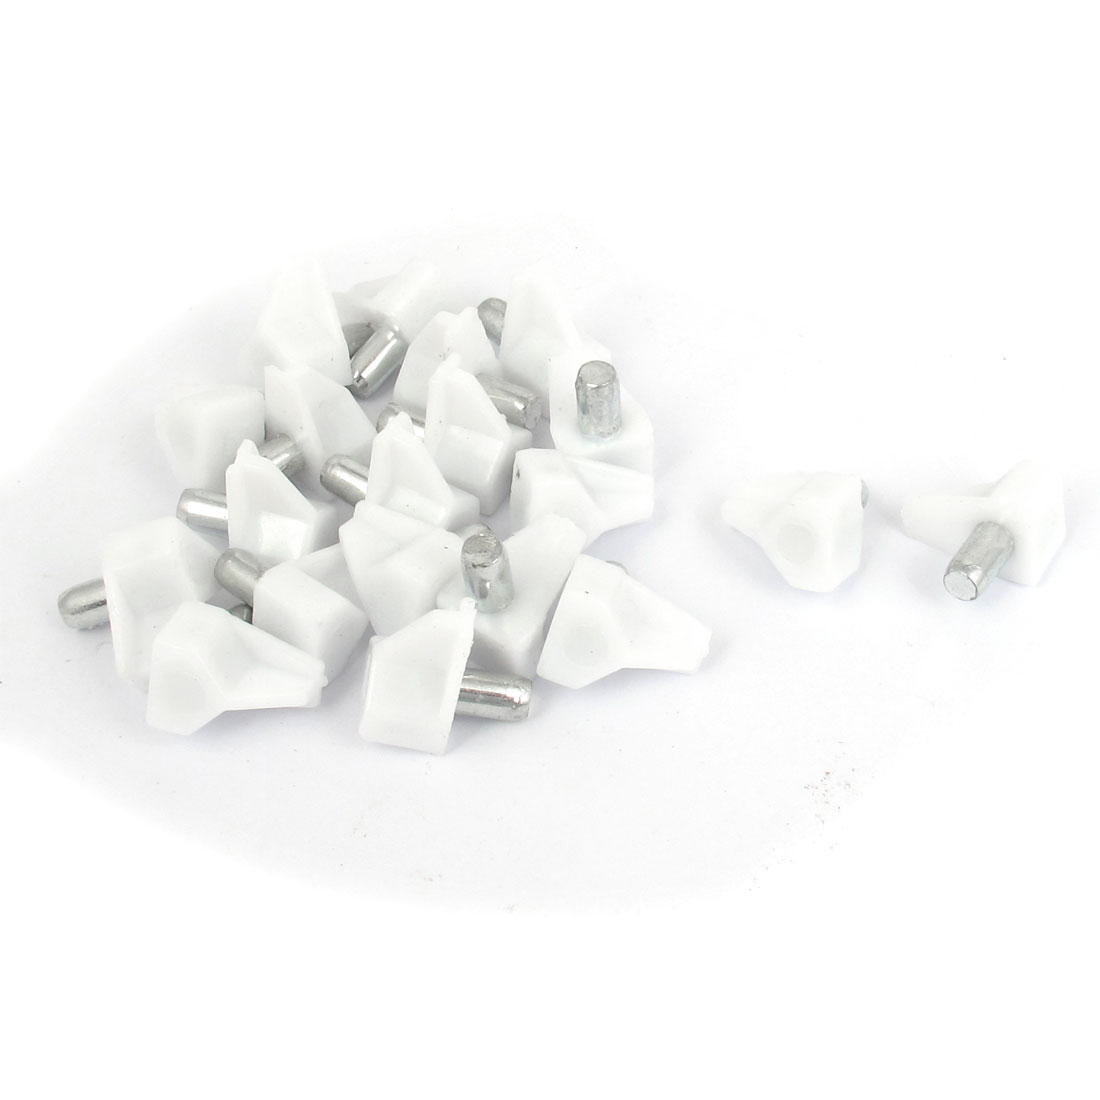 20 Pcs 5mm Dia Pin White Plastic Shelf Support for Kitchen Cabinet Shelves